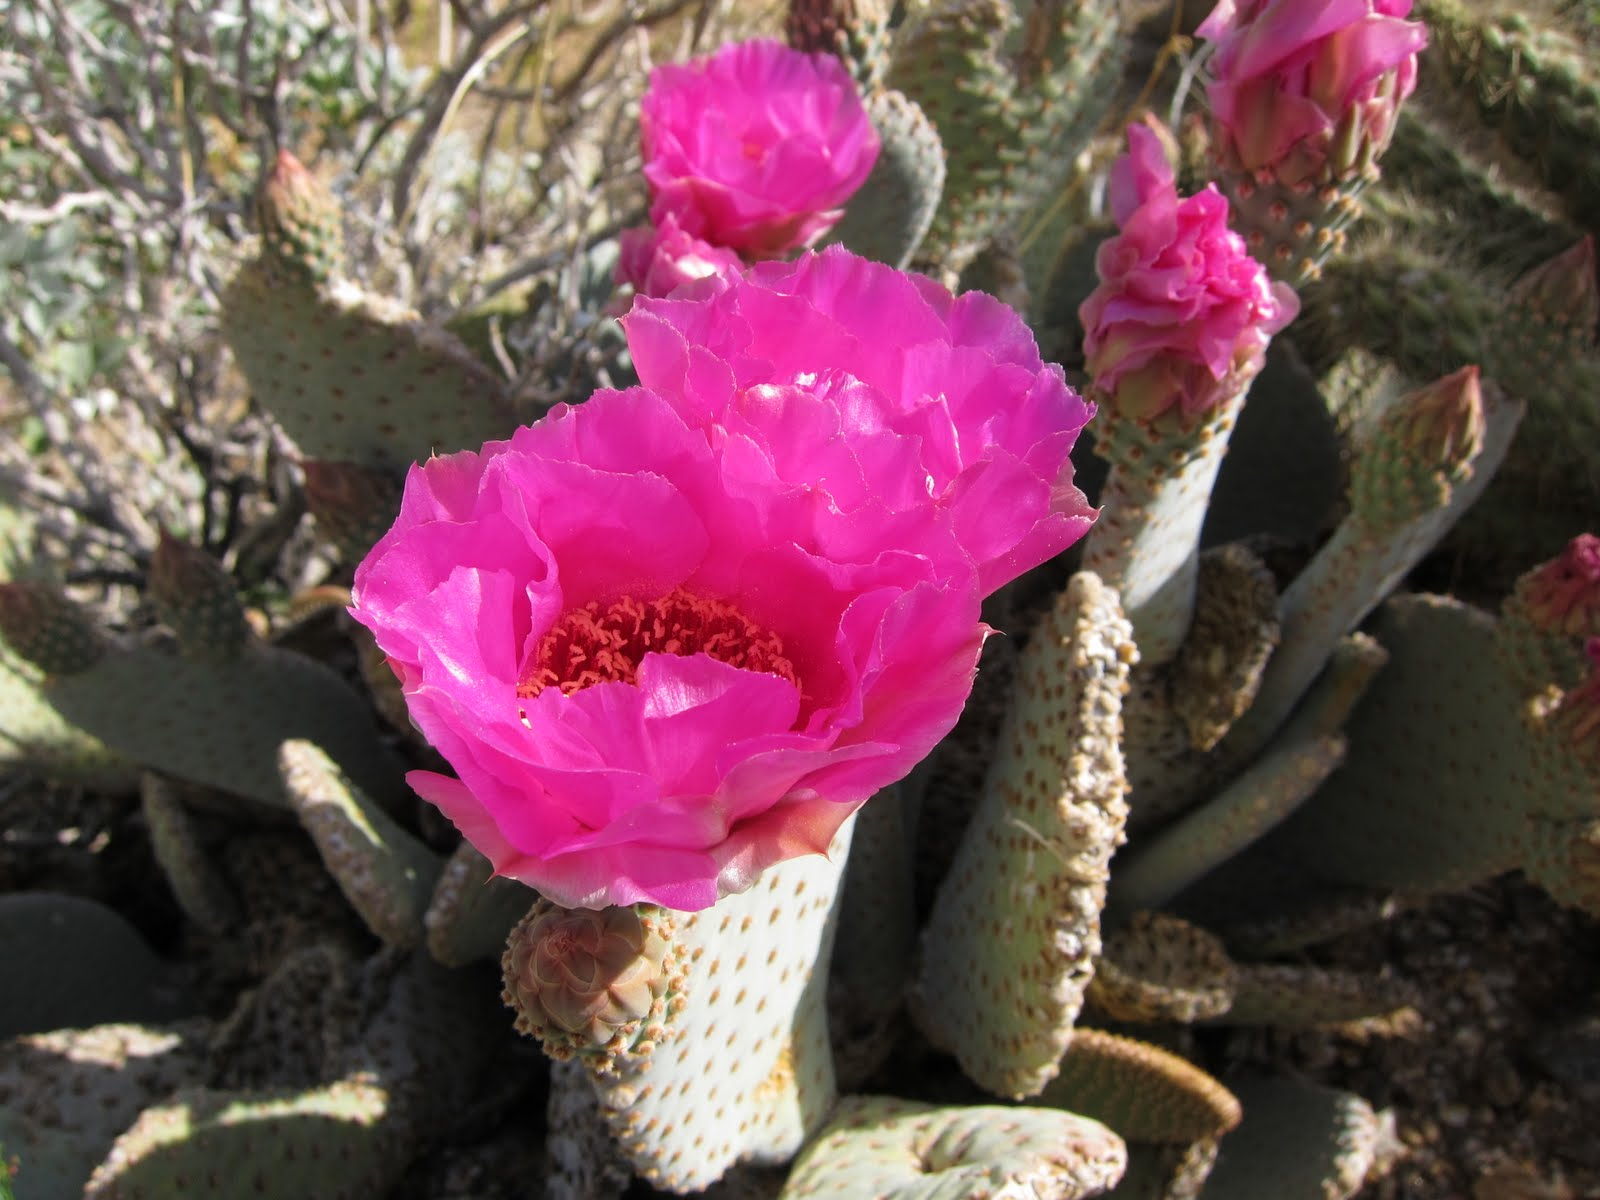 Another angle of the Beavertail Cactus Bloom